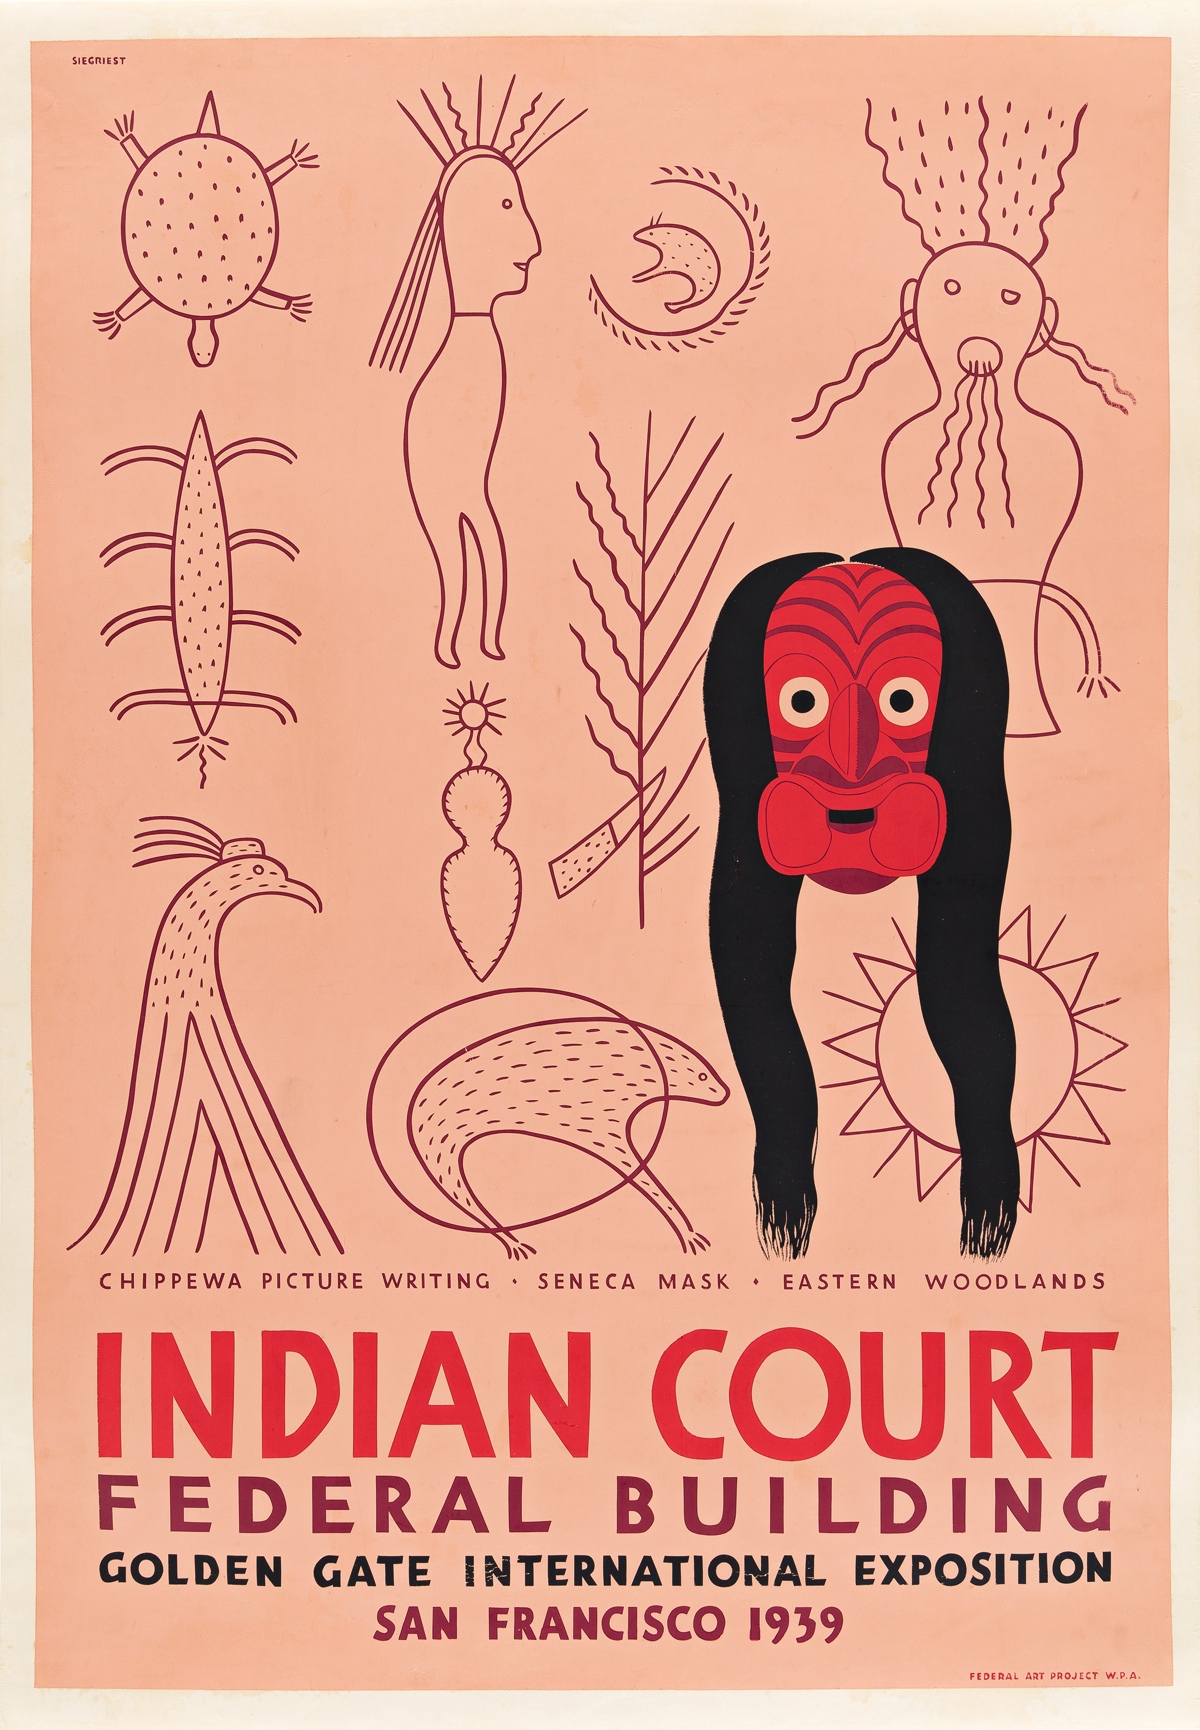 LOUIS B. SIEGRIEST (1899-1989) Indian Court Federal Building / Chippewa Picture Writing.